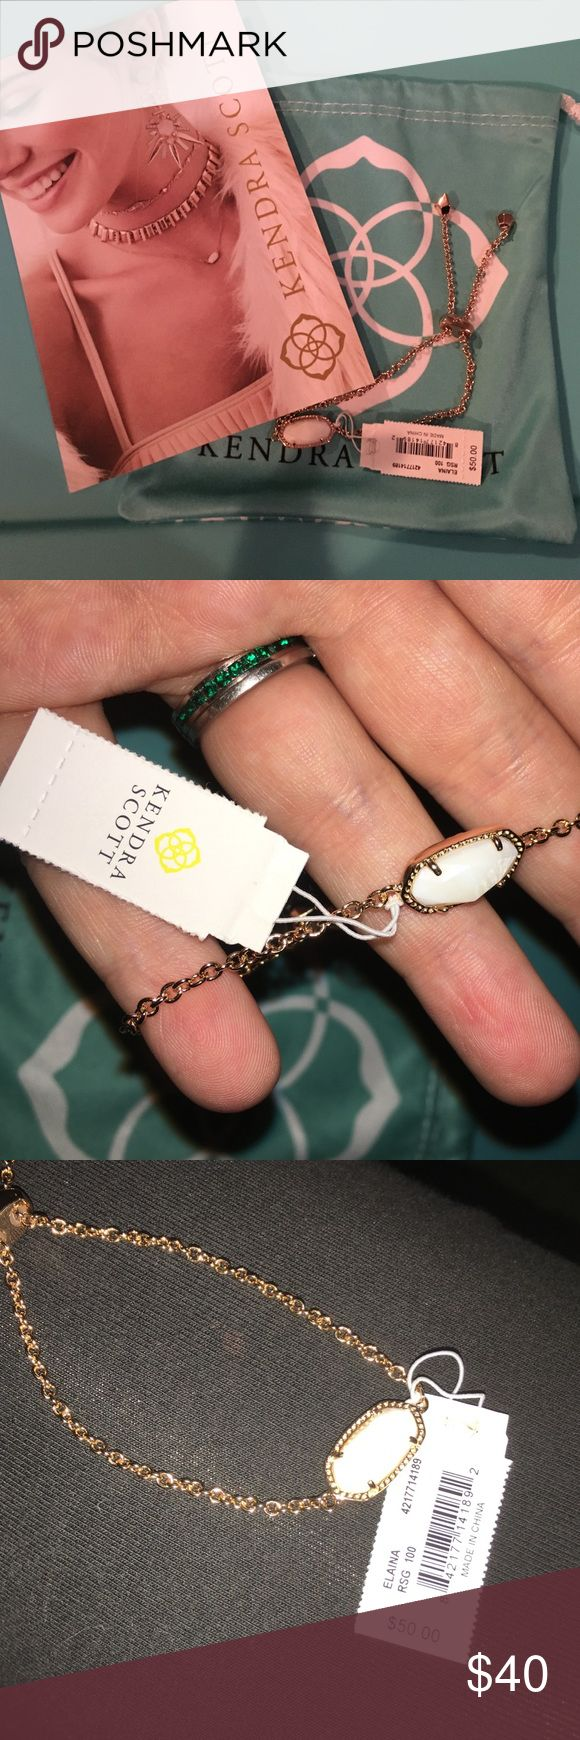 KENDRA SCOTT ELAINA BRACELET NWT Rose Gold/White Pearl Kendra Scott bracelet with a full sliding closure. Never been worn. I will also include a coupon for 20% off a future purchase if purchased before 12/15/2016 (expiration date on coupon) It also comes with the original dust bag. 💗💗 Kendra Scott Jewelry Bracelets